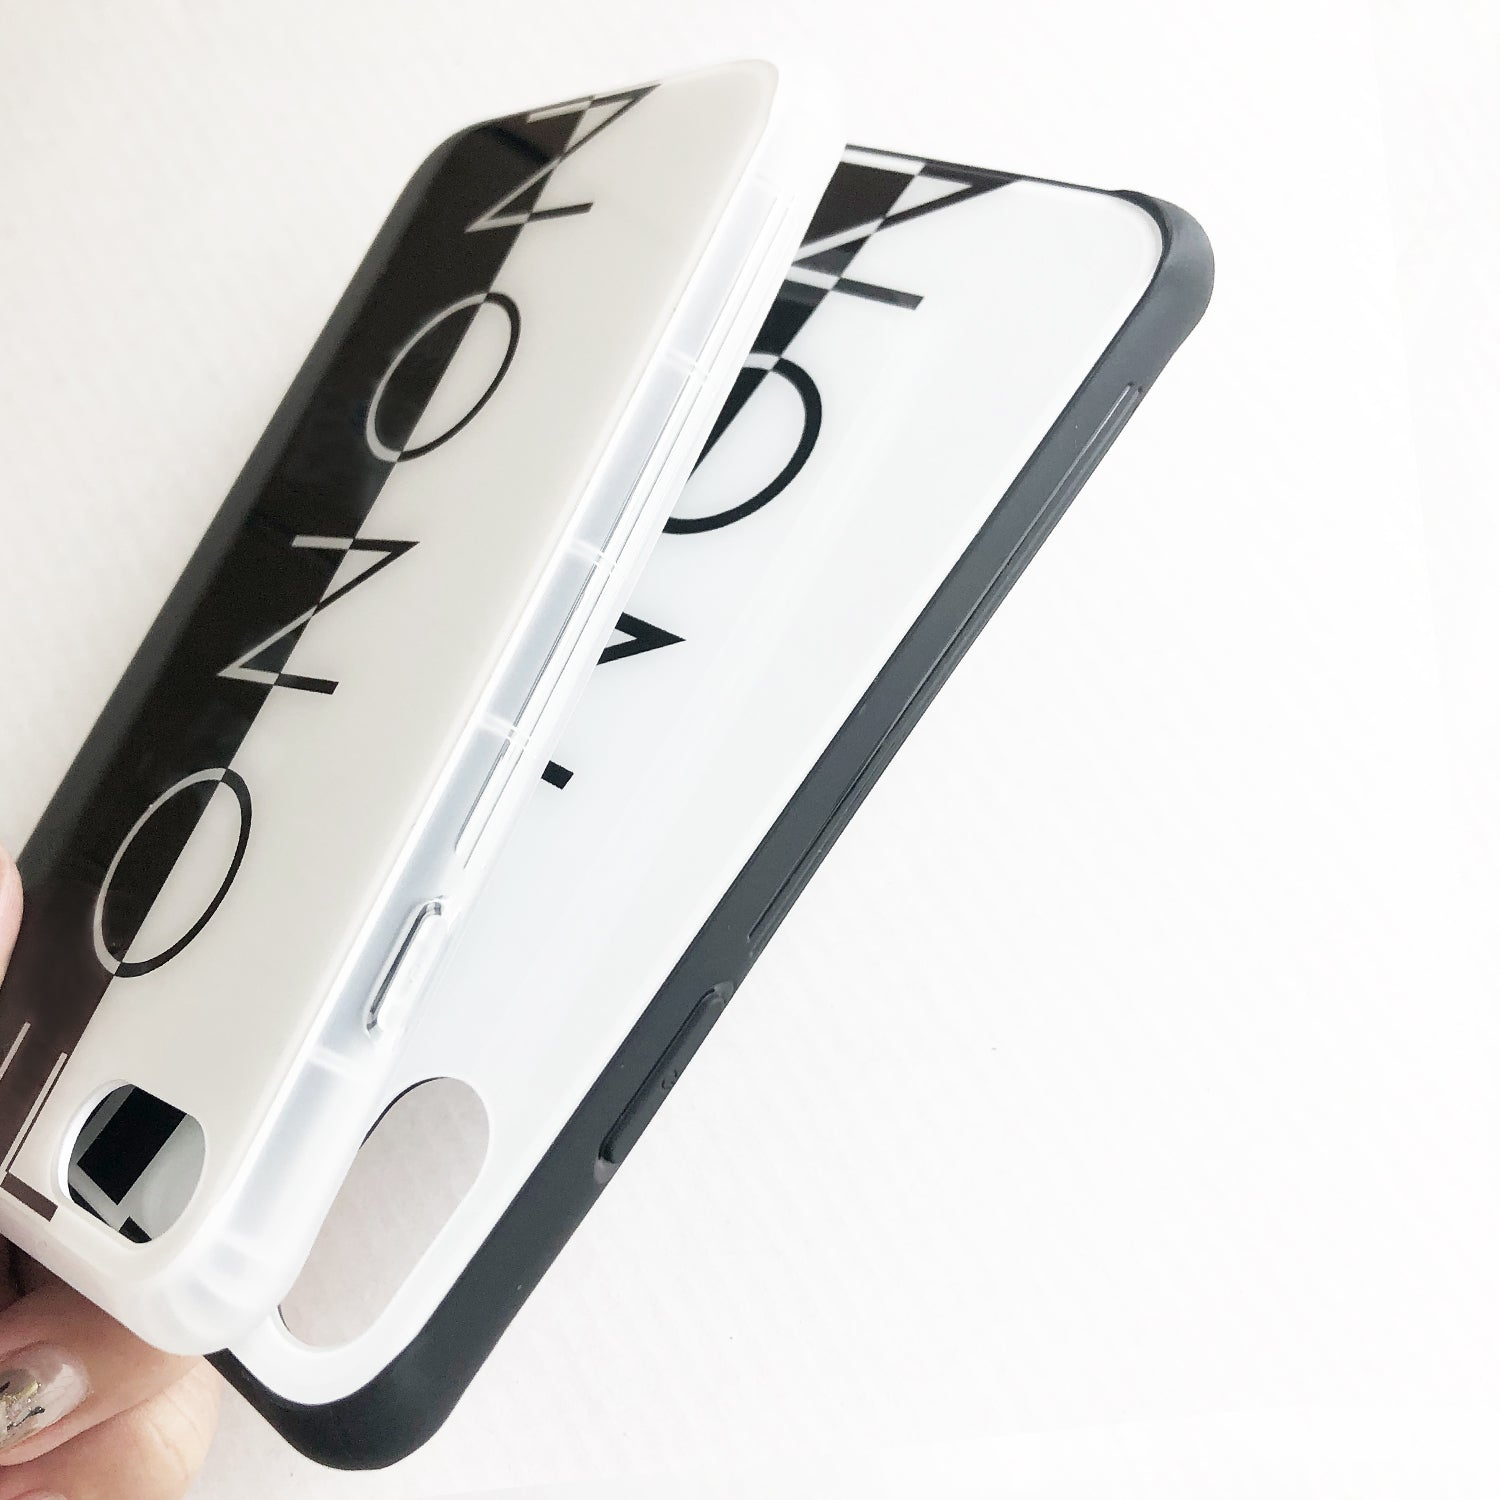 DAMPER GLASS iPhone CASE - TYPO SERIES - FONON Black